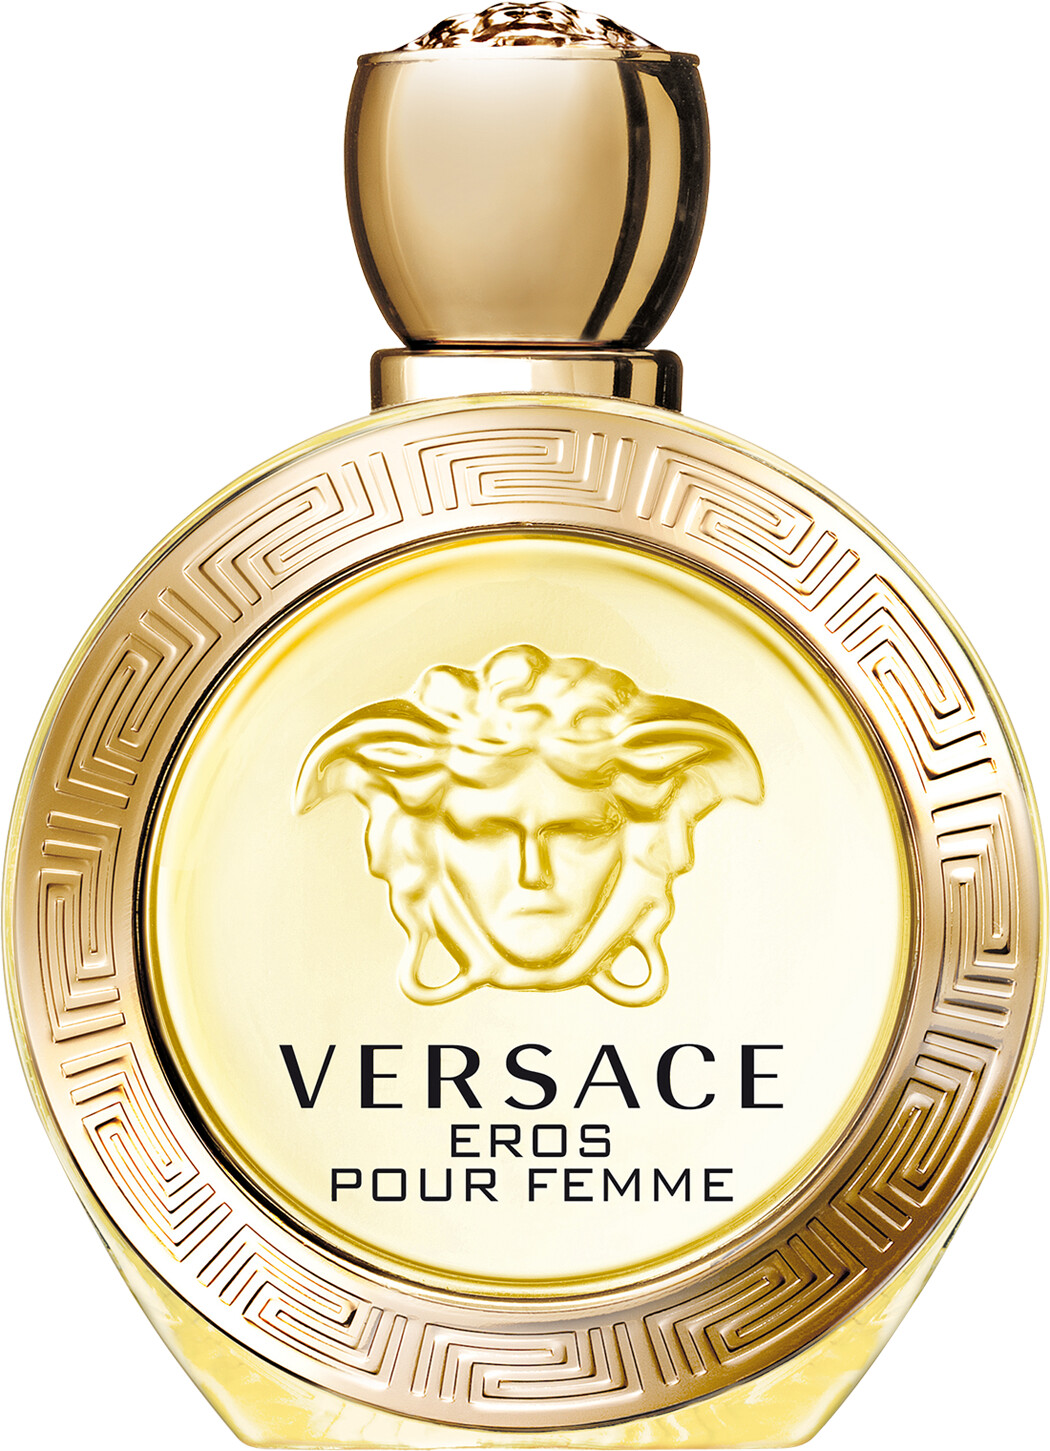 Photo De Toilette Versace Eros Pour Femme Eau De Toilette Spray